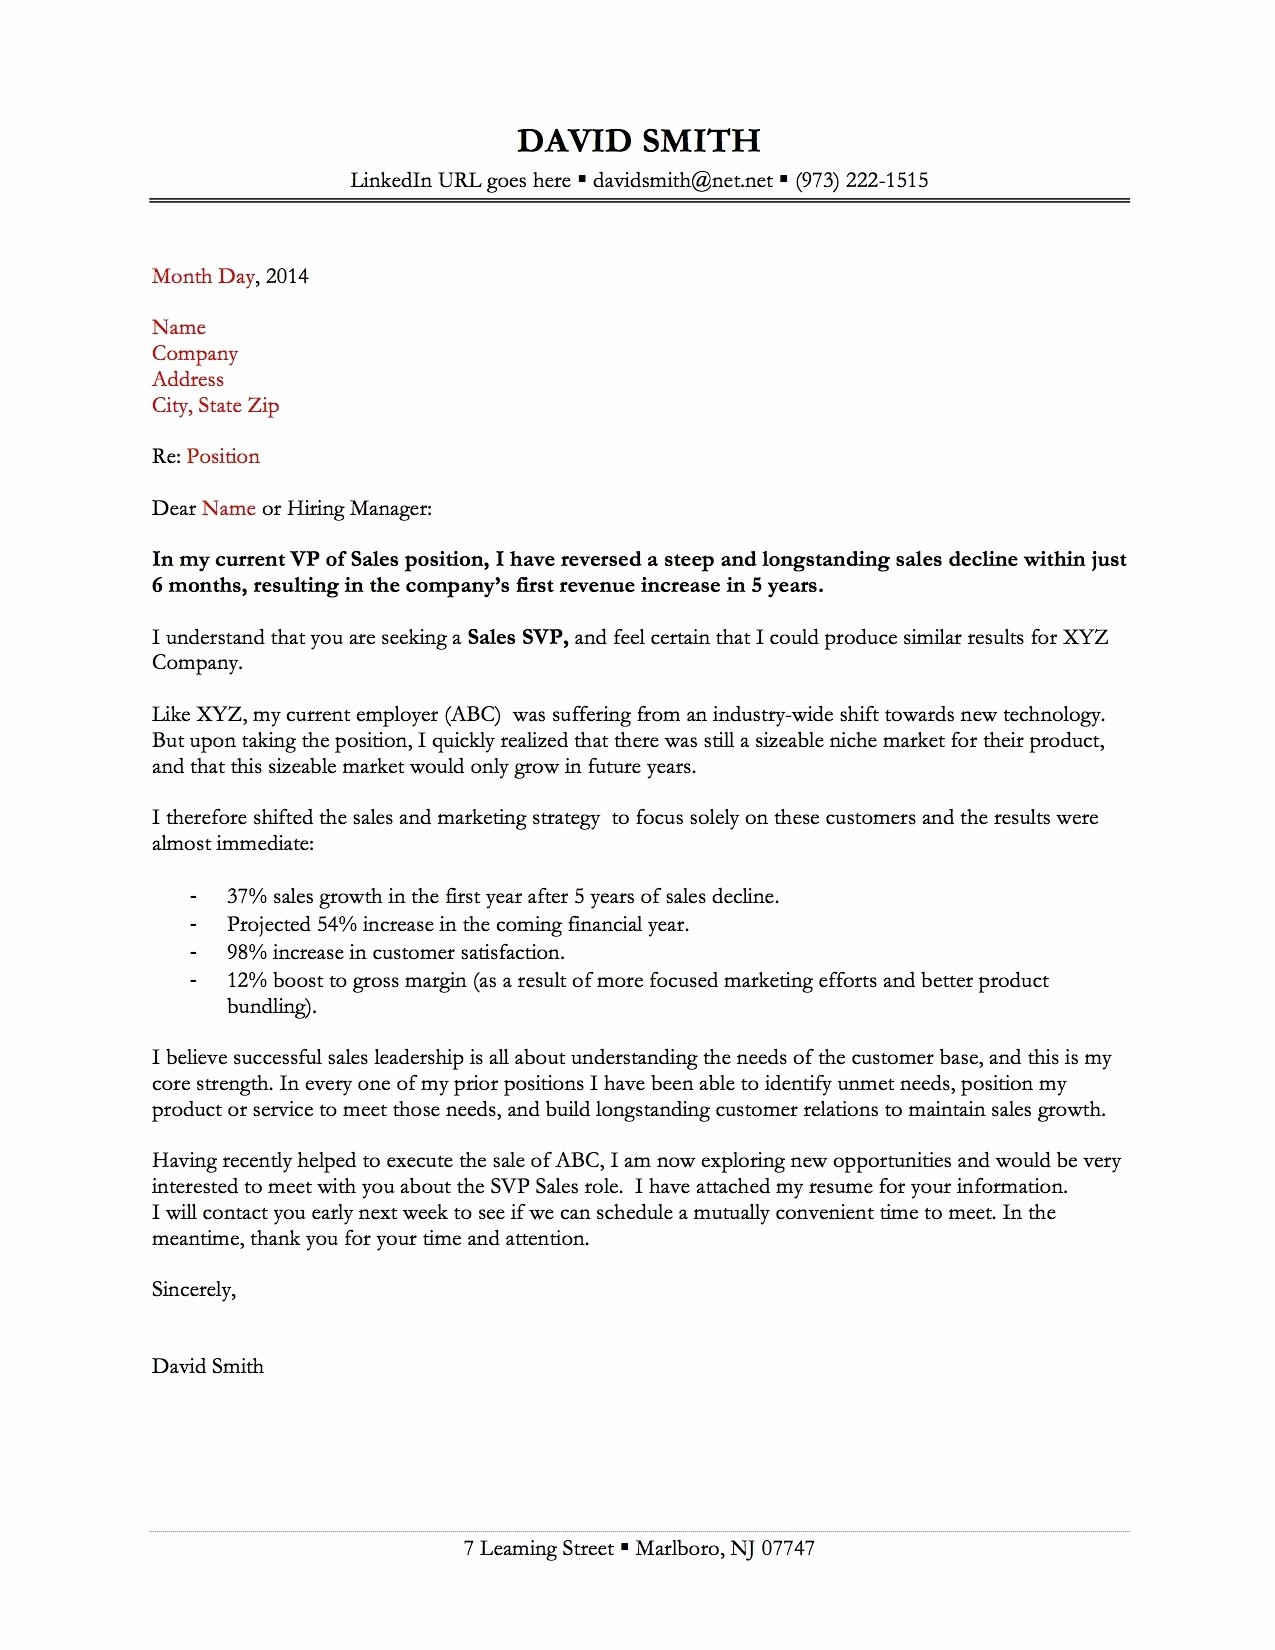 Sample Resume and Cover Letter Awesome Great Cover Letter Examples